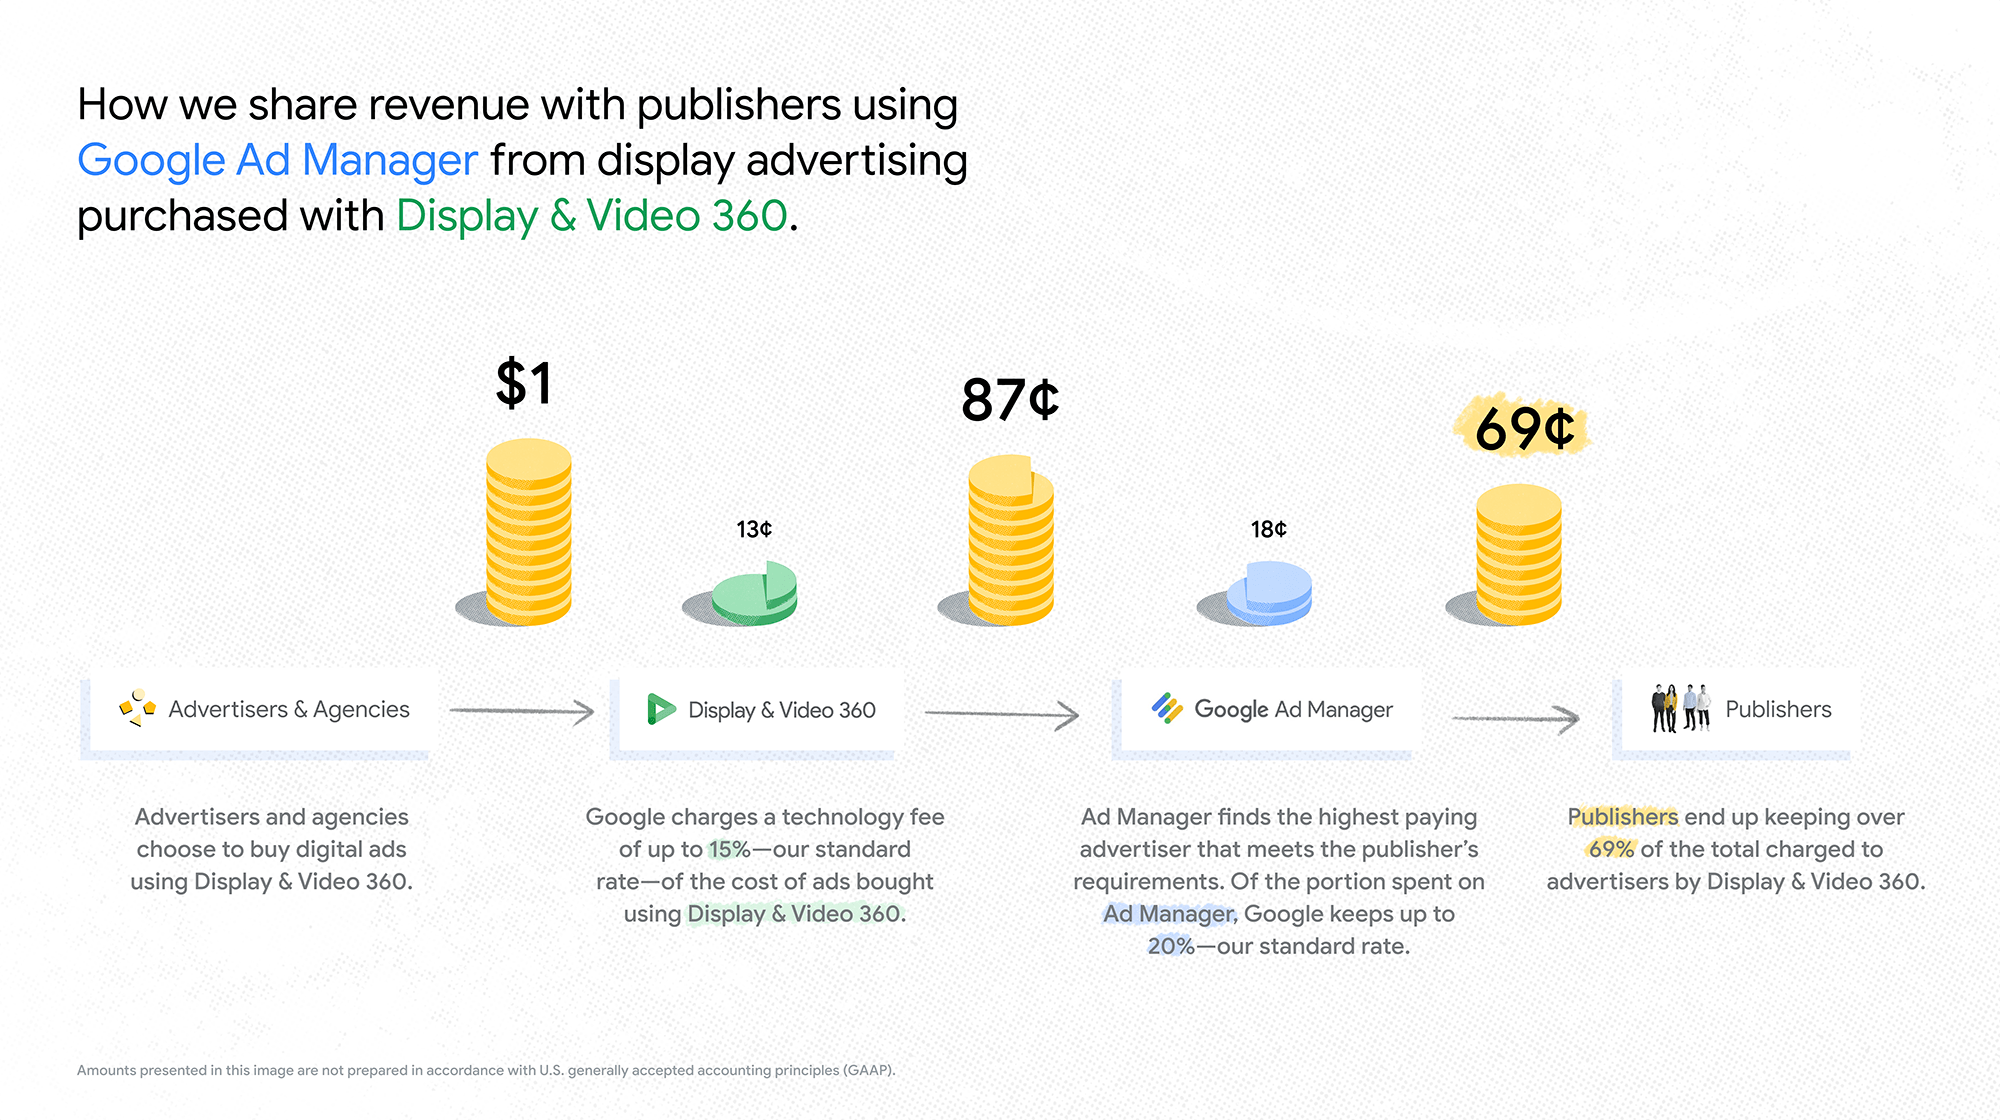 Google fee structure - display video 360 to Google ad manager